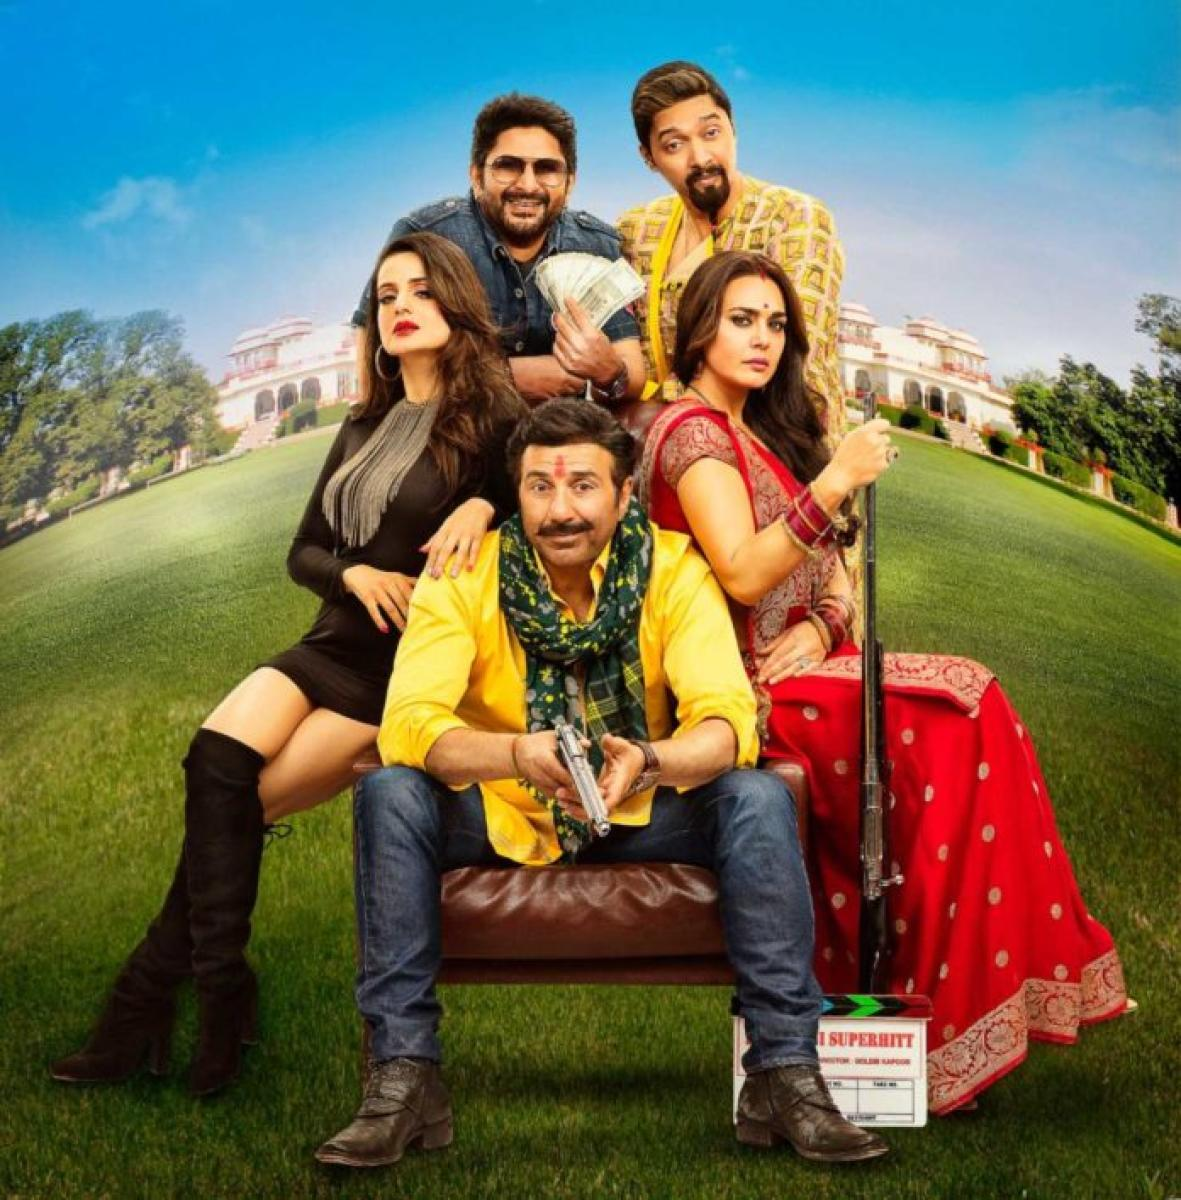 Bhaiaji Superhit: A mess of a movie